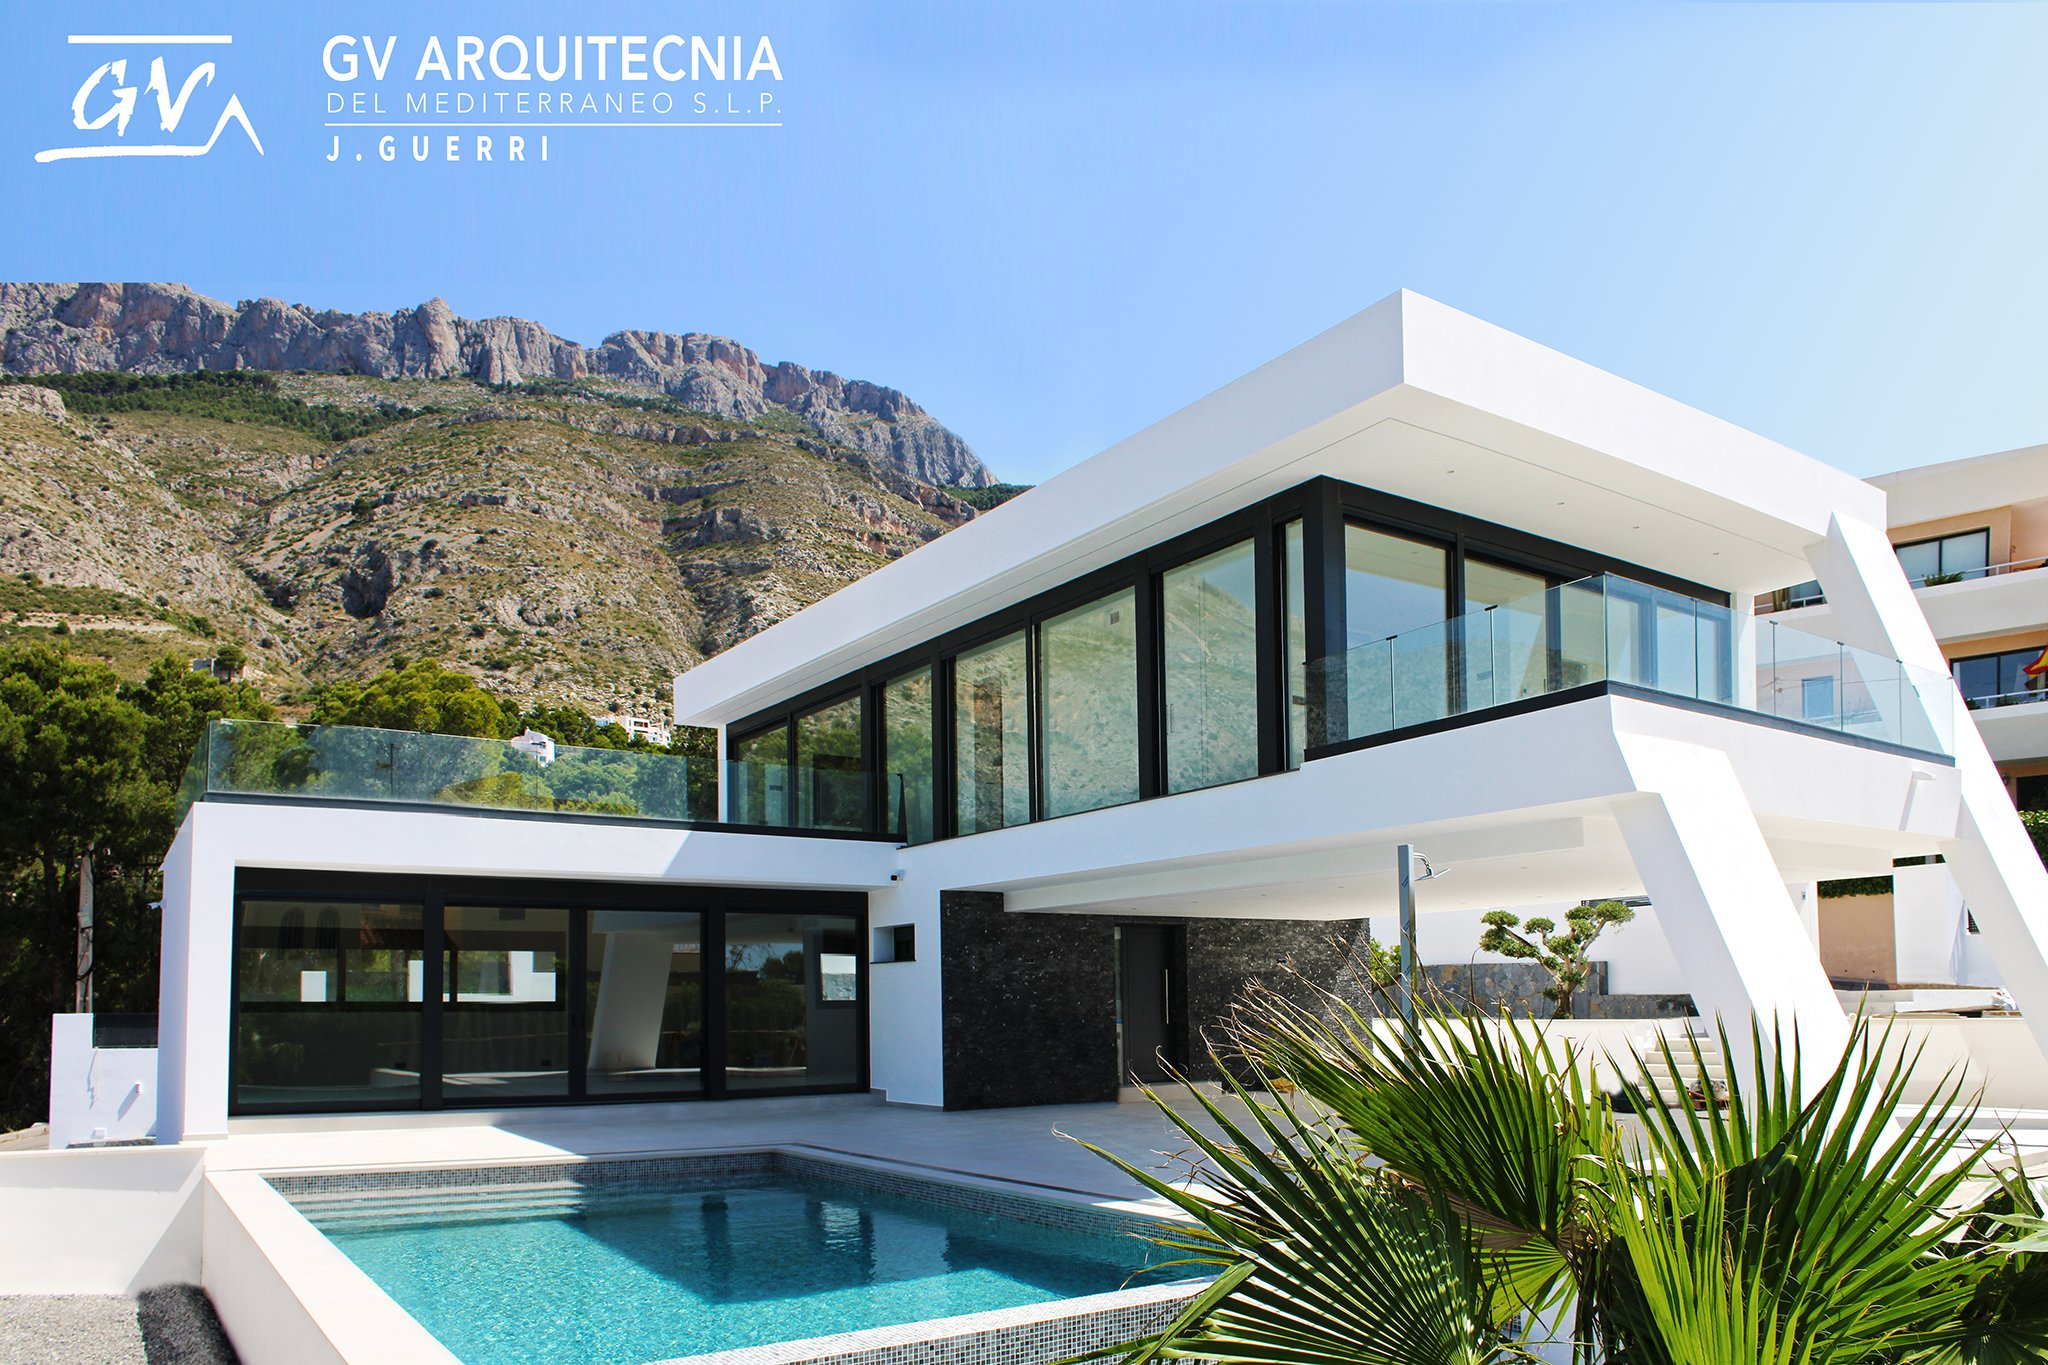 GV Arquitecnia Project